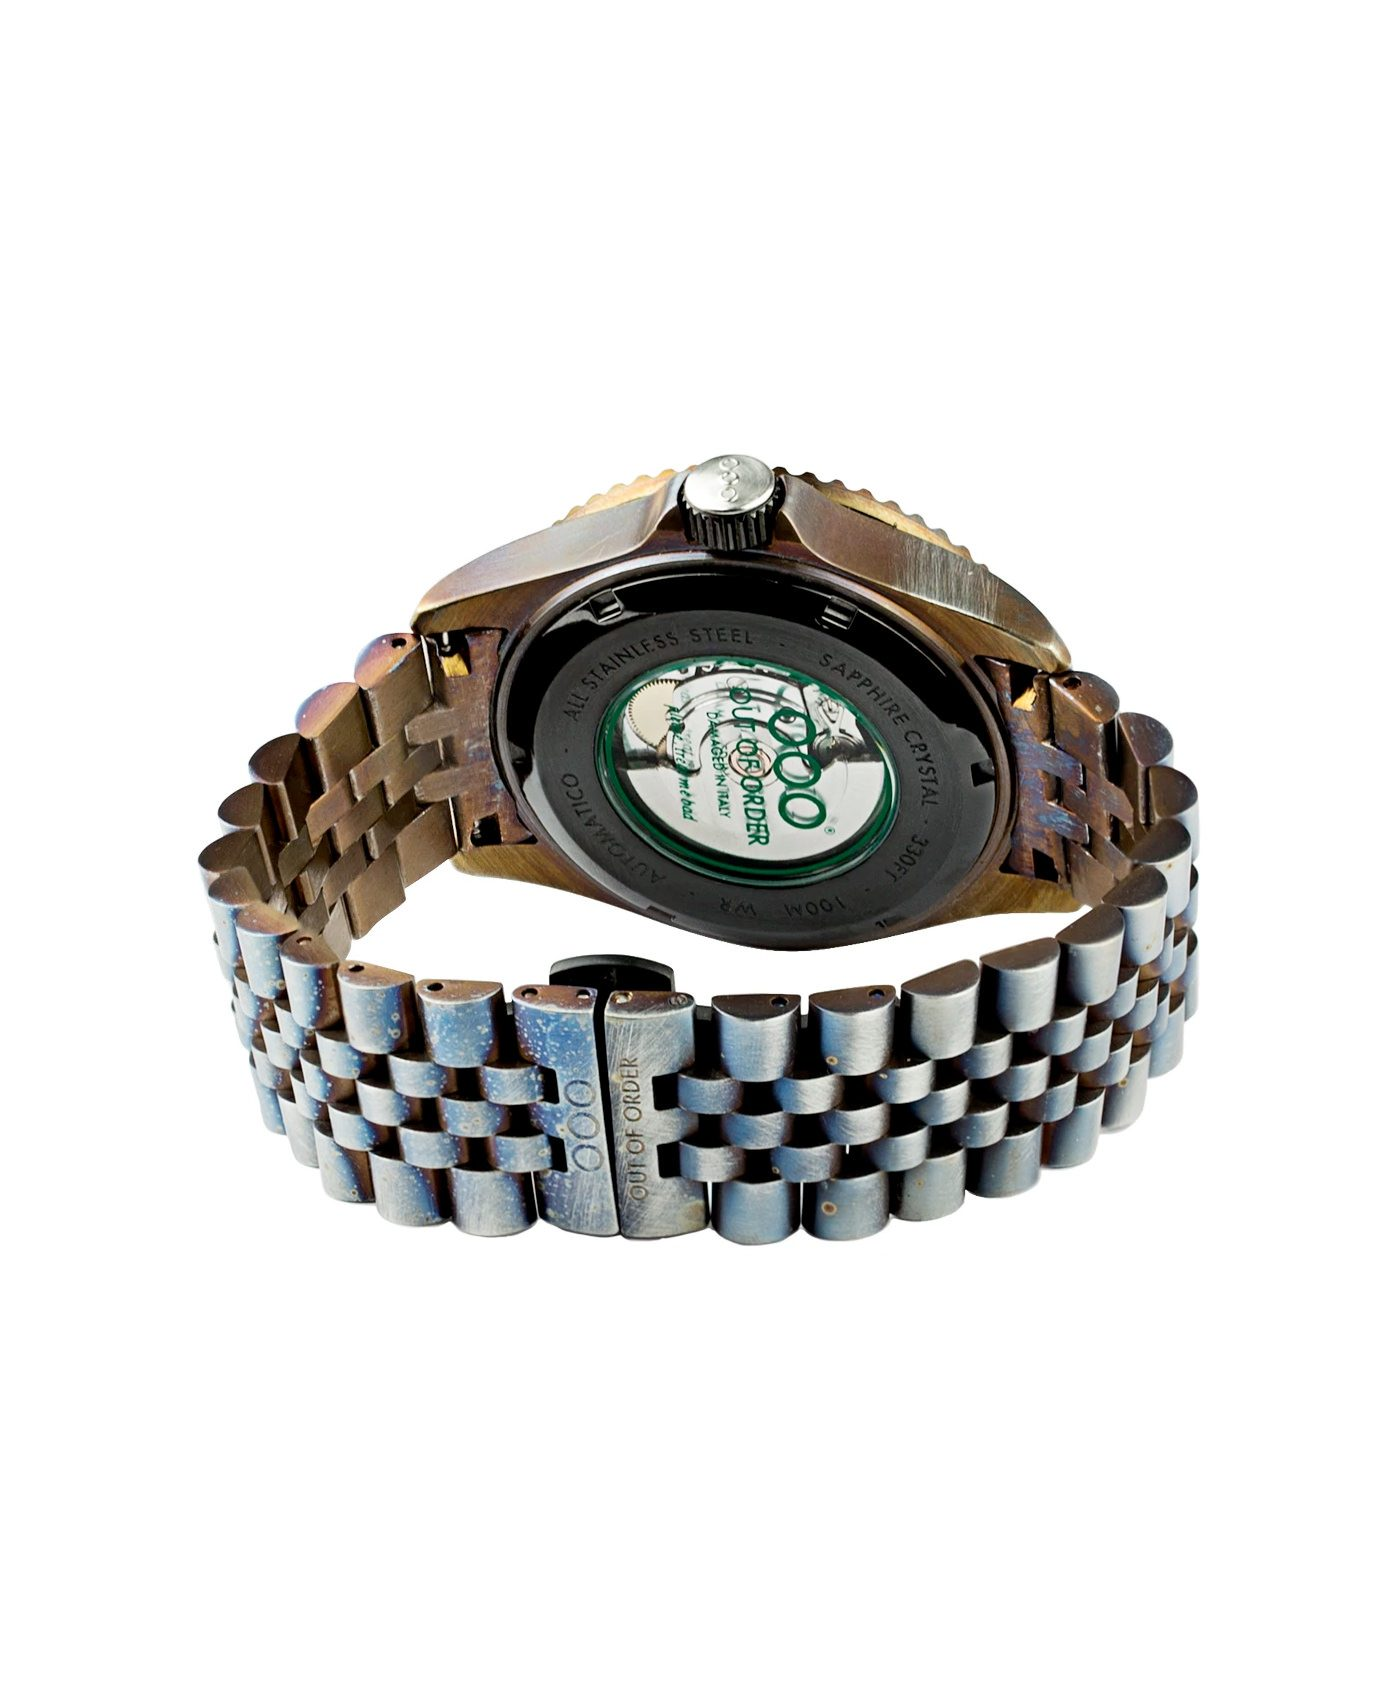 WB Watch Out Of Order green Swiss Automatico back